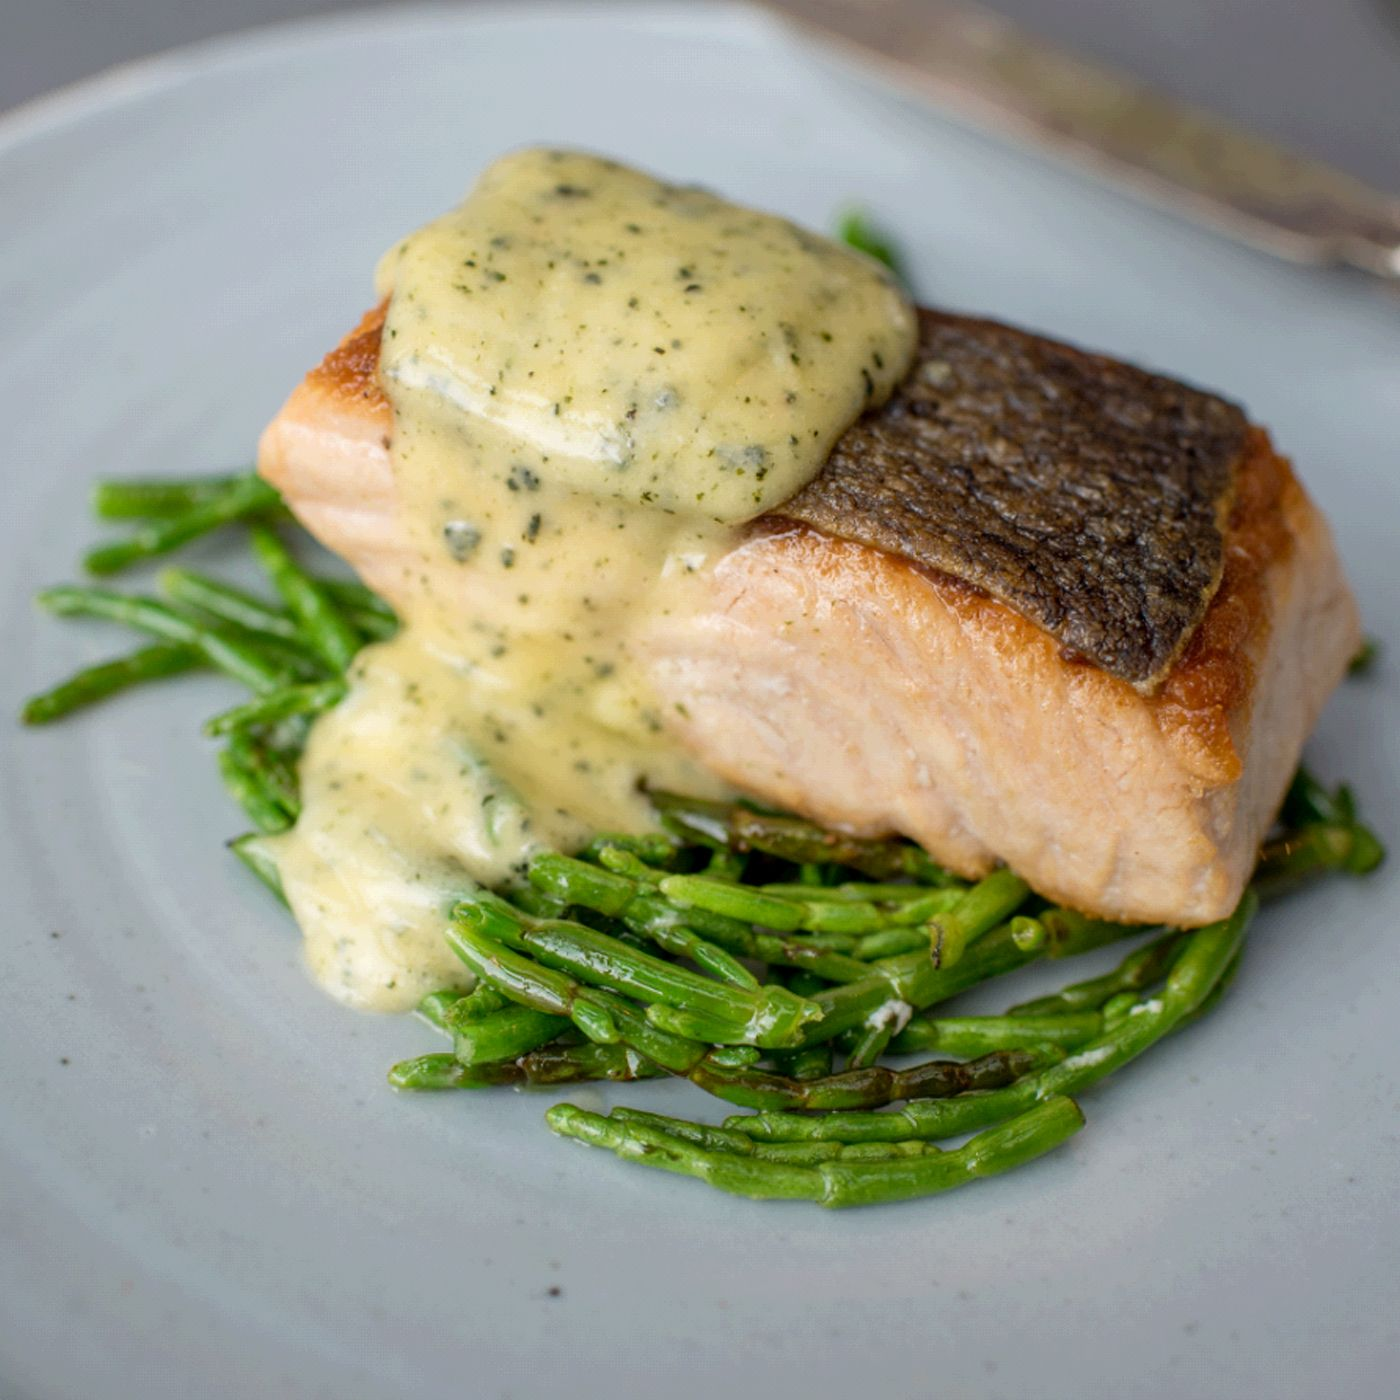 Tom Kitchin's Sea Trout with Seaweed and a Seaweed